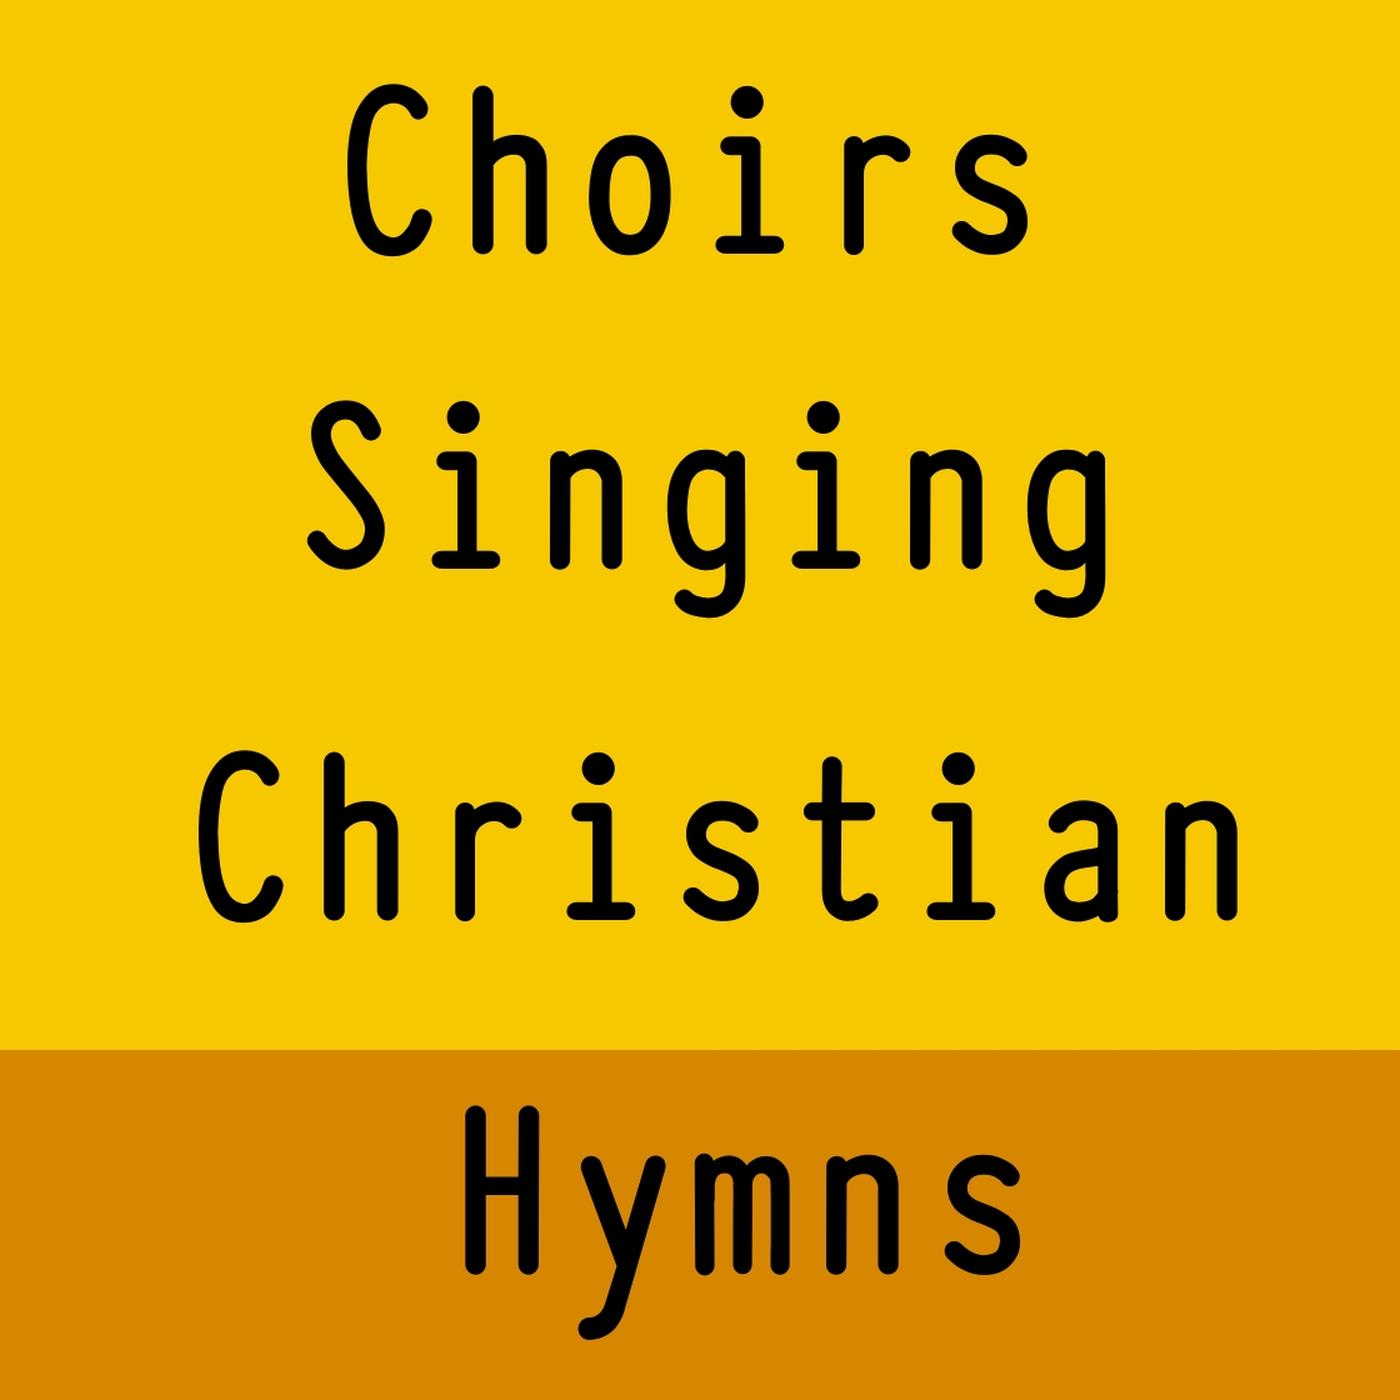 Choirs singing hymns